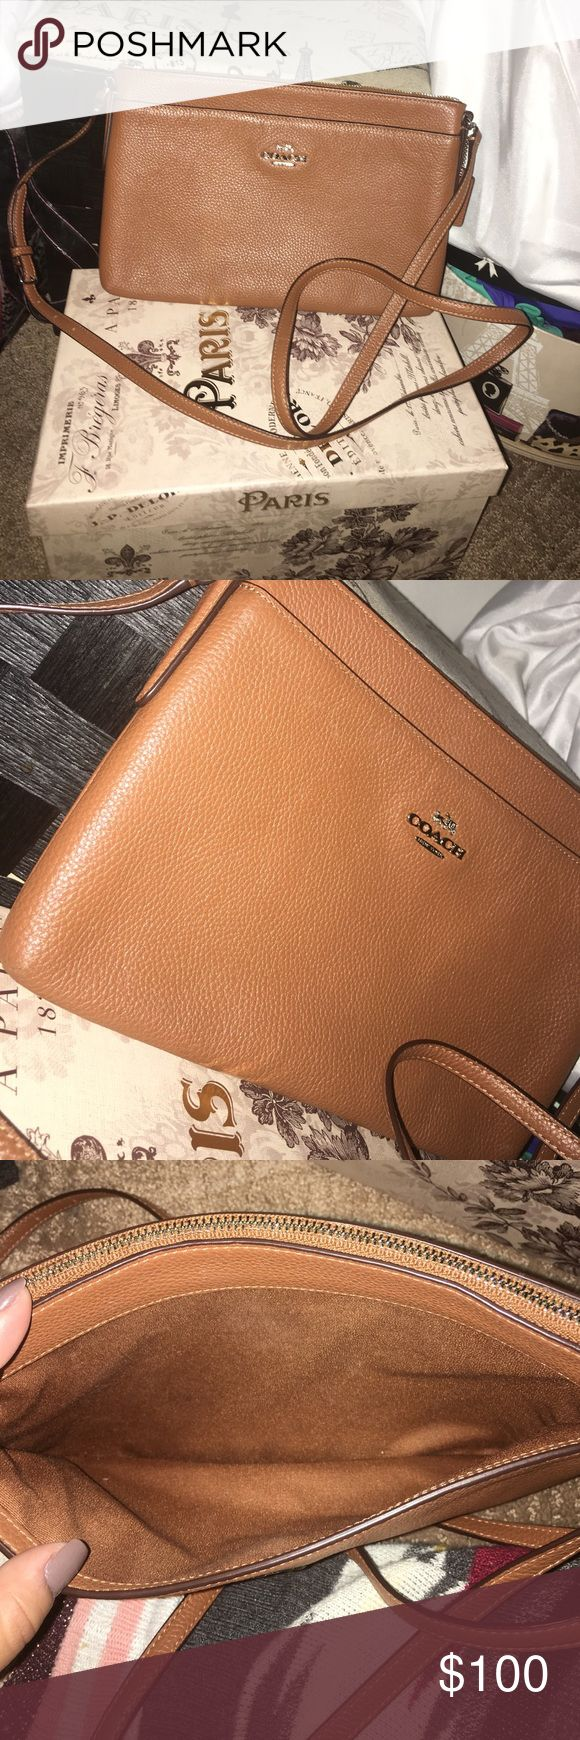 🌺COACH swingpack 🌺 Saddle brown swingpack. Silver hardwear! Excellent condition. Purchases at a full retail coach store about a year ago but only used for a week. Been sitting in a storage box since. Silver accents aren't for me. Needs a new home :) Check out bundle deals and my other coach listings! Coach Bags Crossbody Bags